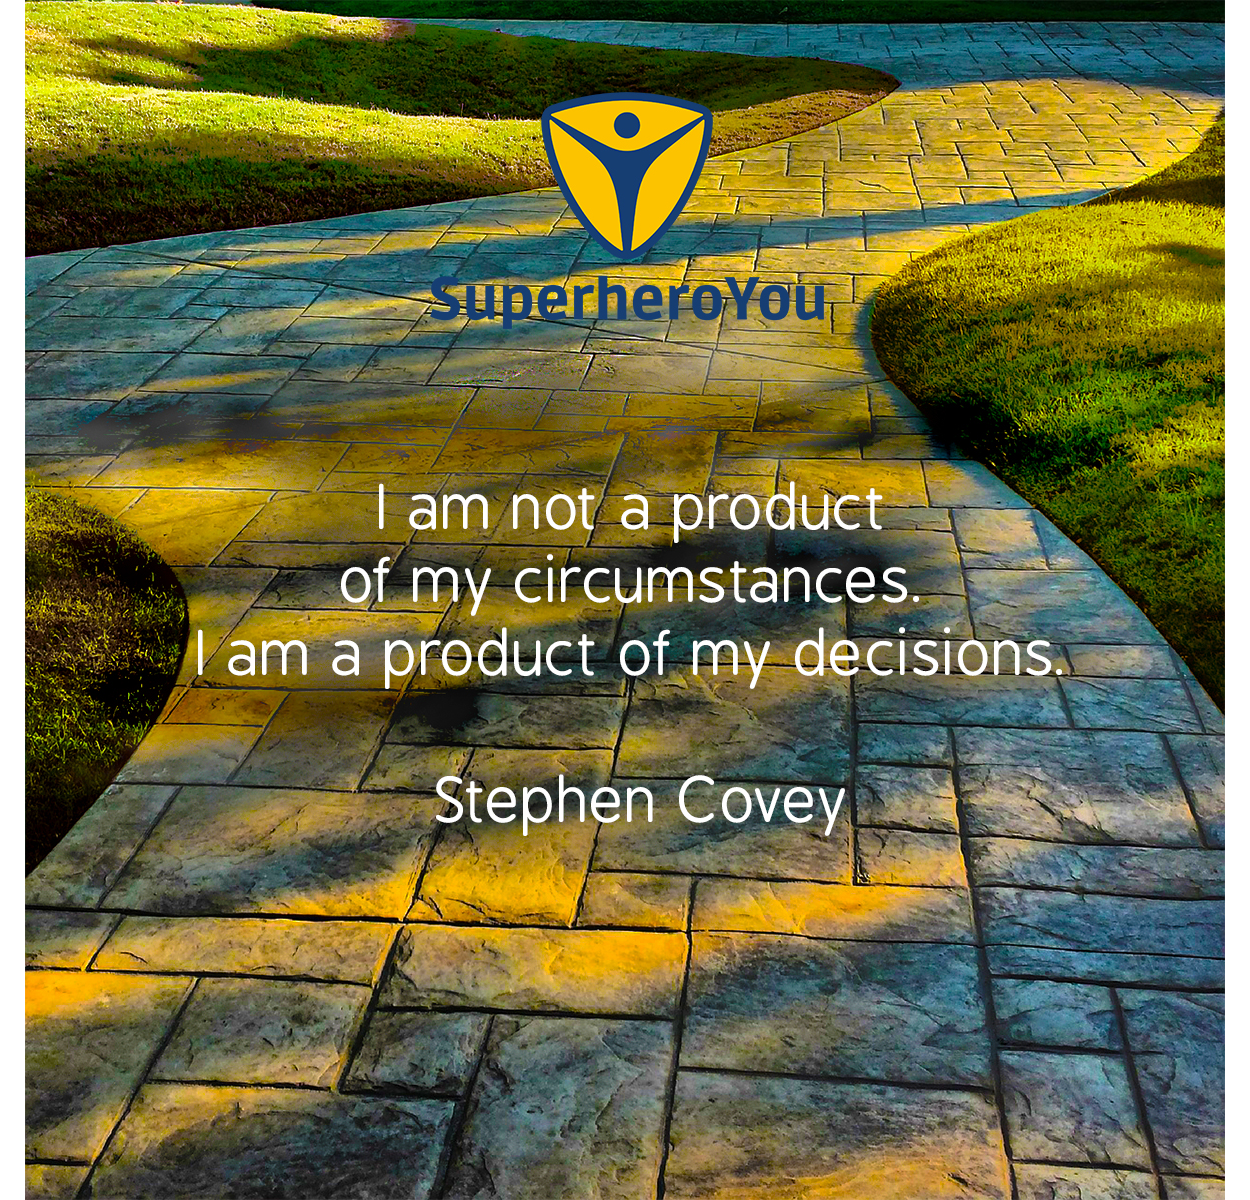 stephencovey.png